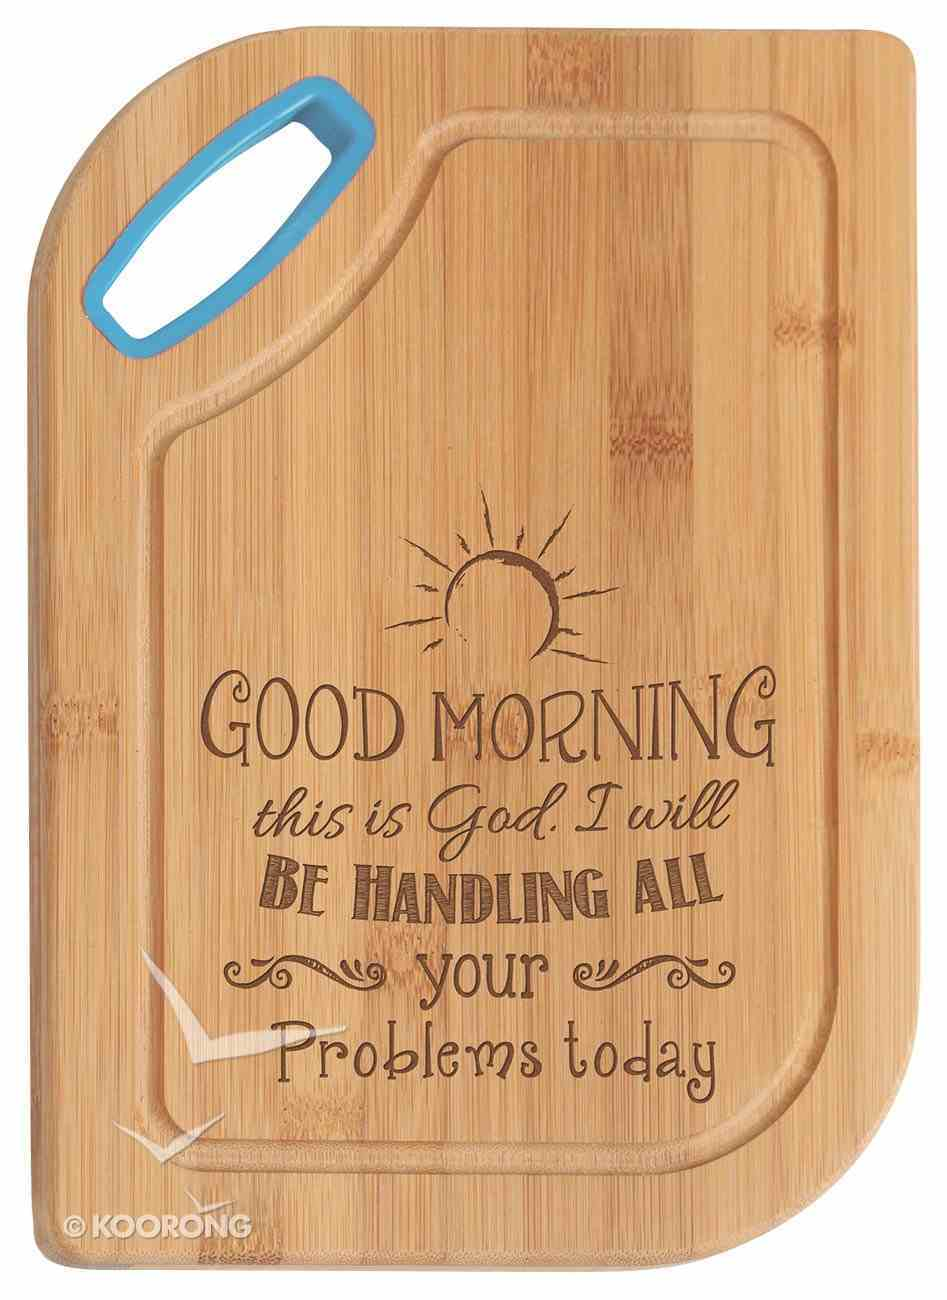 Hardwood Bamboo Cutting Board: Good Morning This is God Homeware